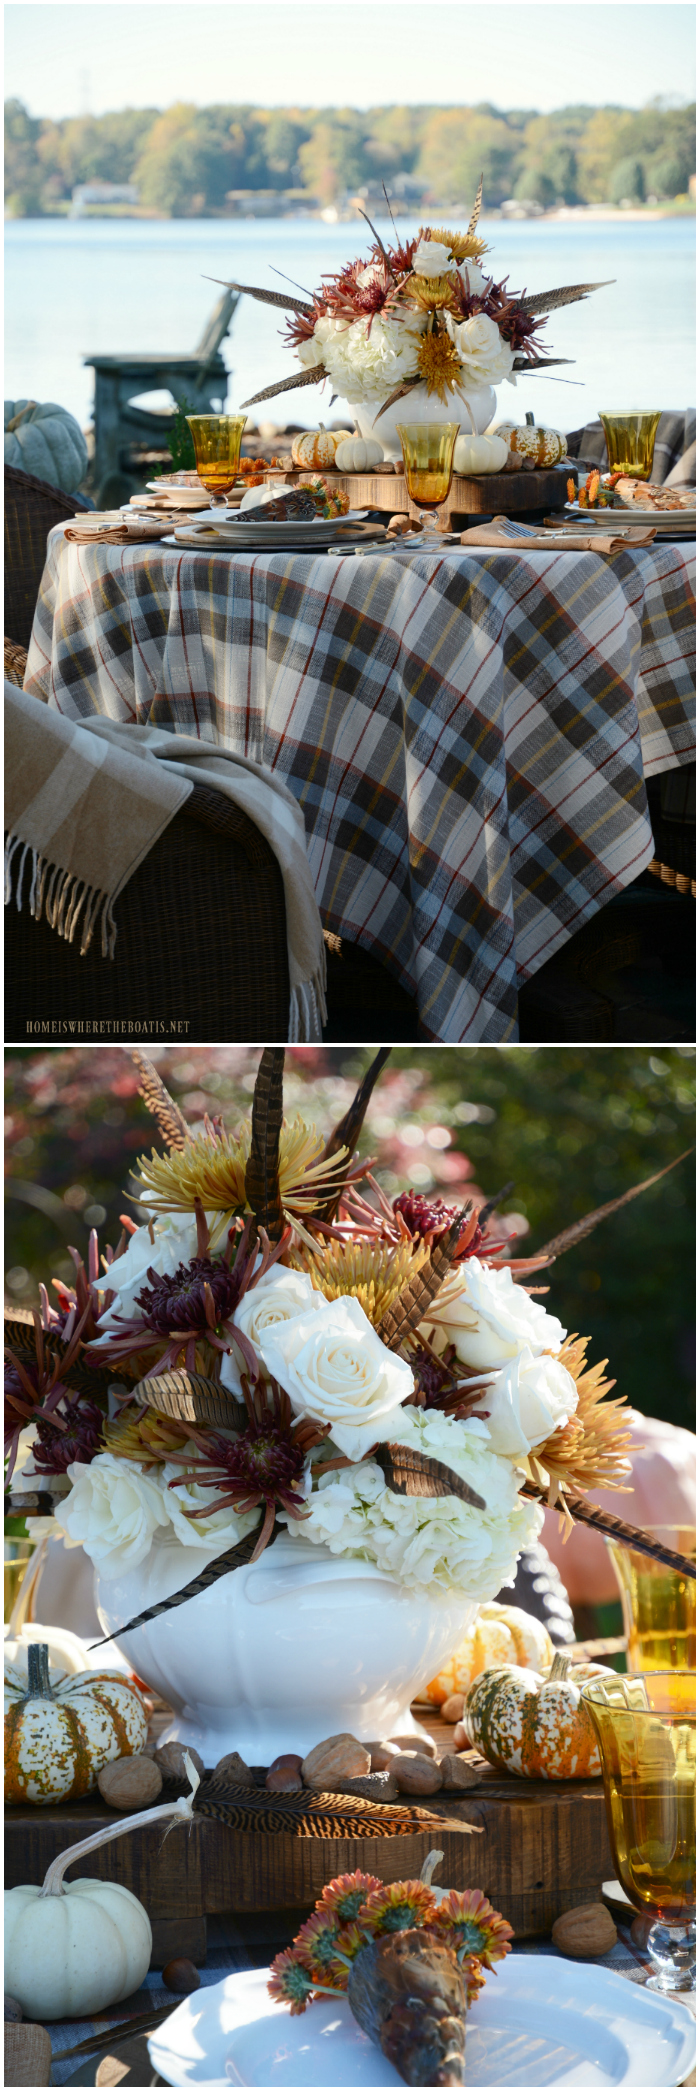 Fall table with plaid, feathers and pumpkins | ©homeiswheretheboatis.net #fall #tablescape #alfresco #flowers #feathers